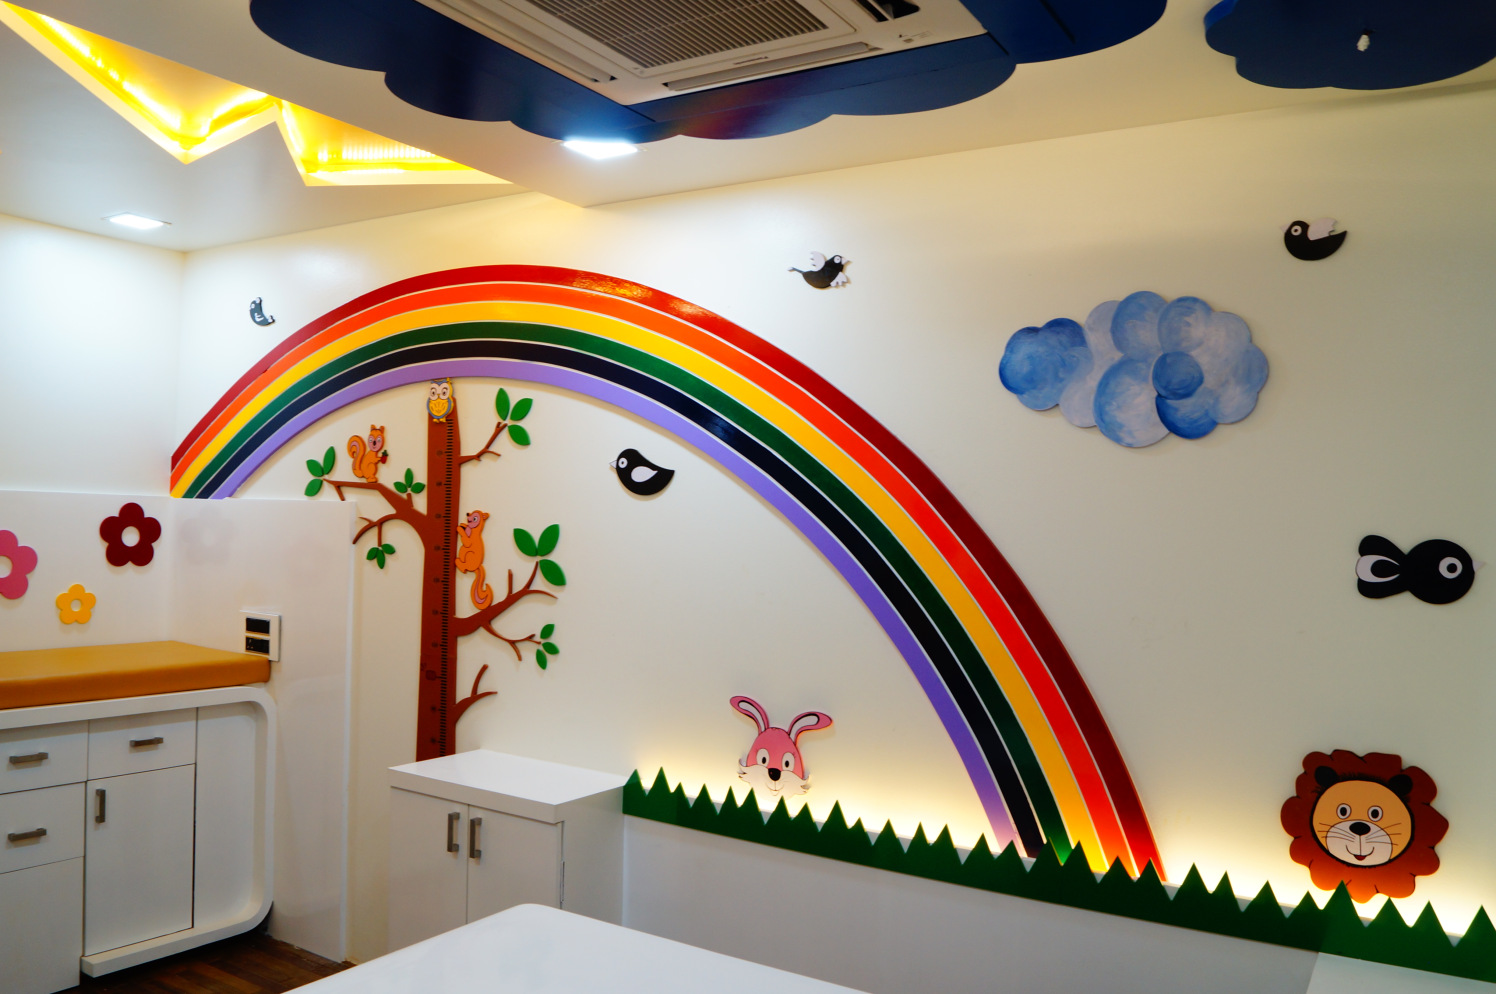 Catch the rainbow by Aishwarya Sagar Kadam Contemporary | Interior Design Photos & Ideas